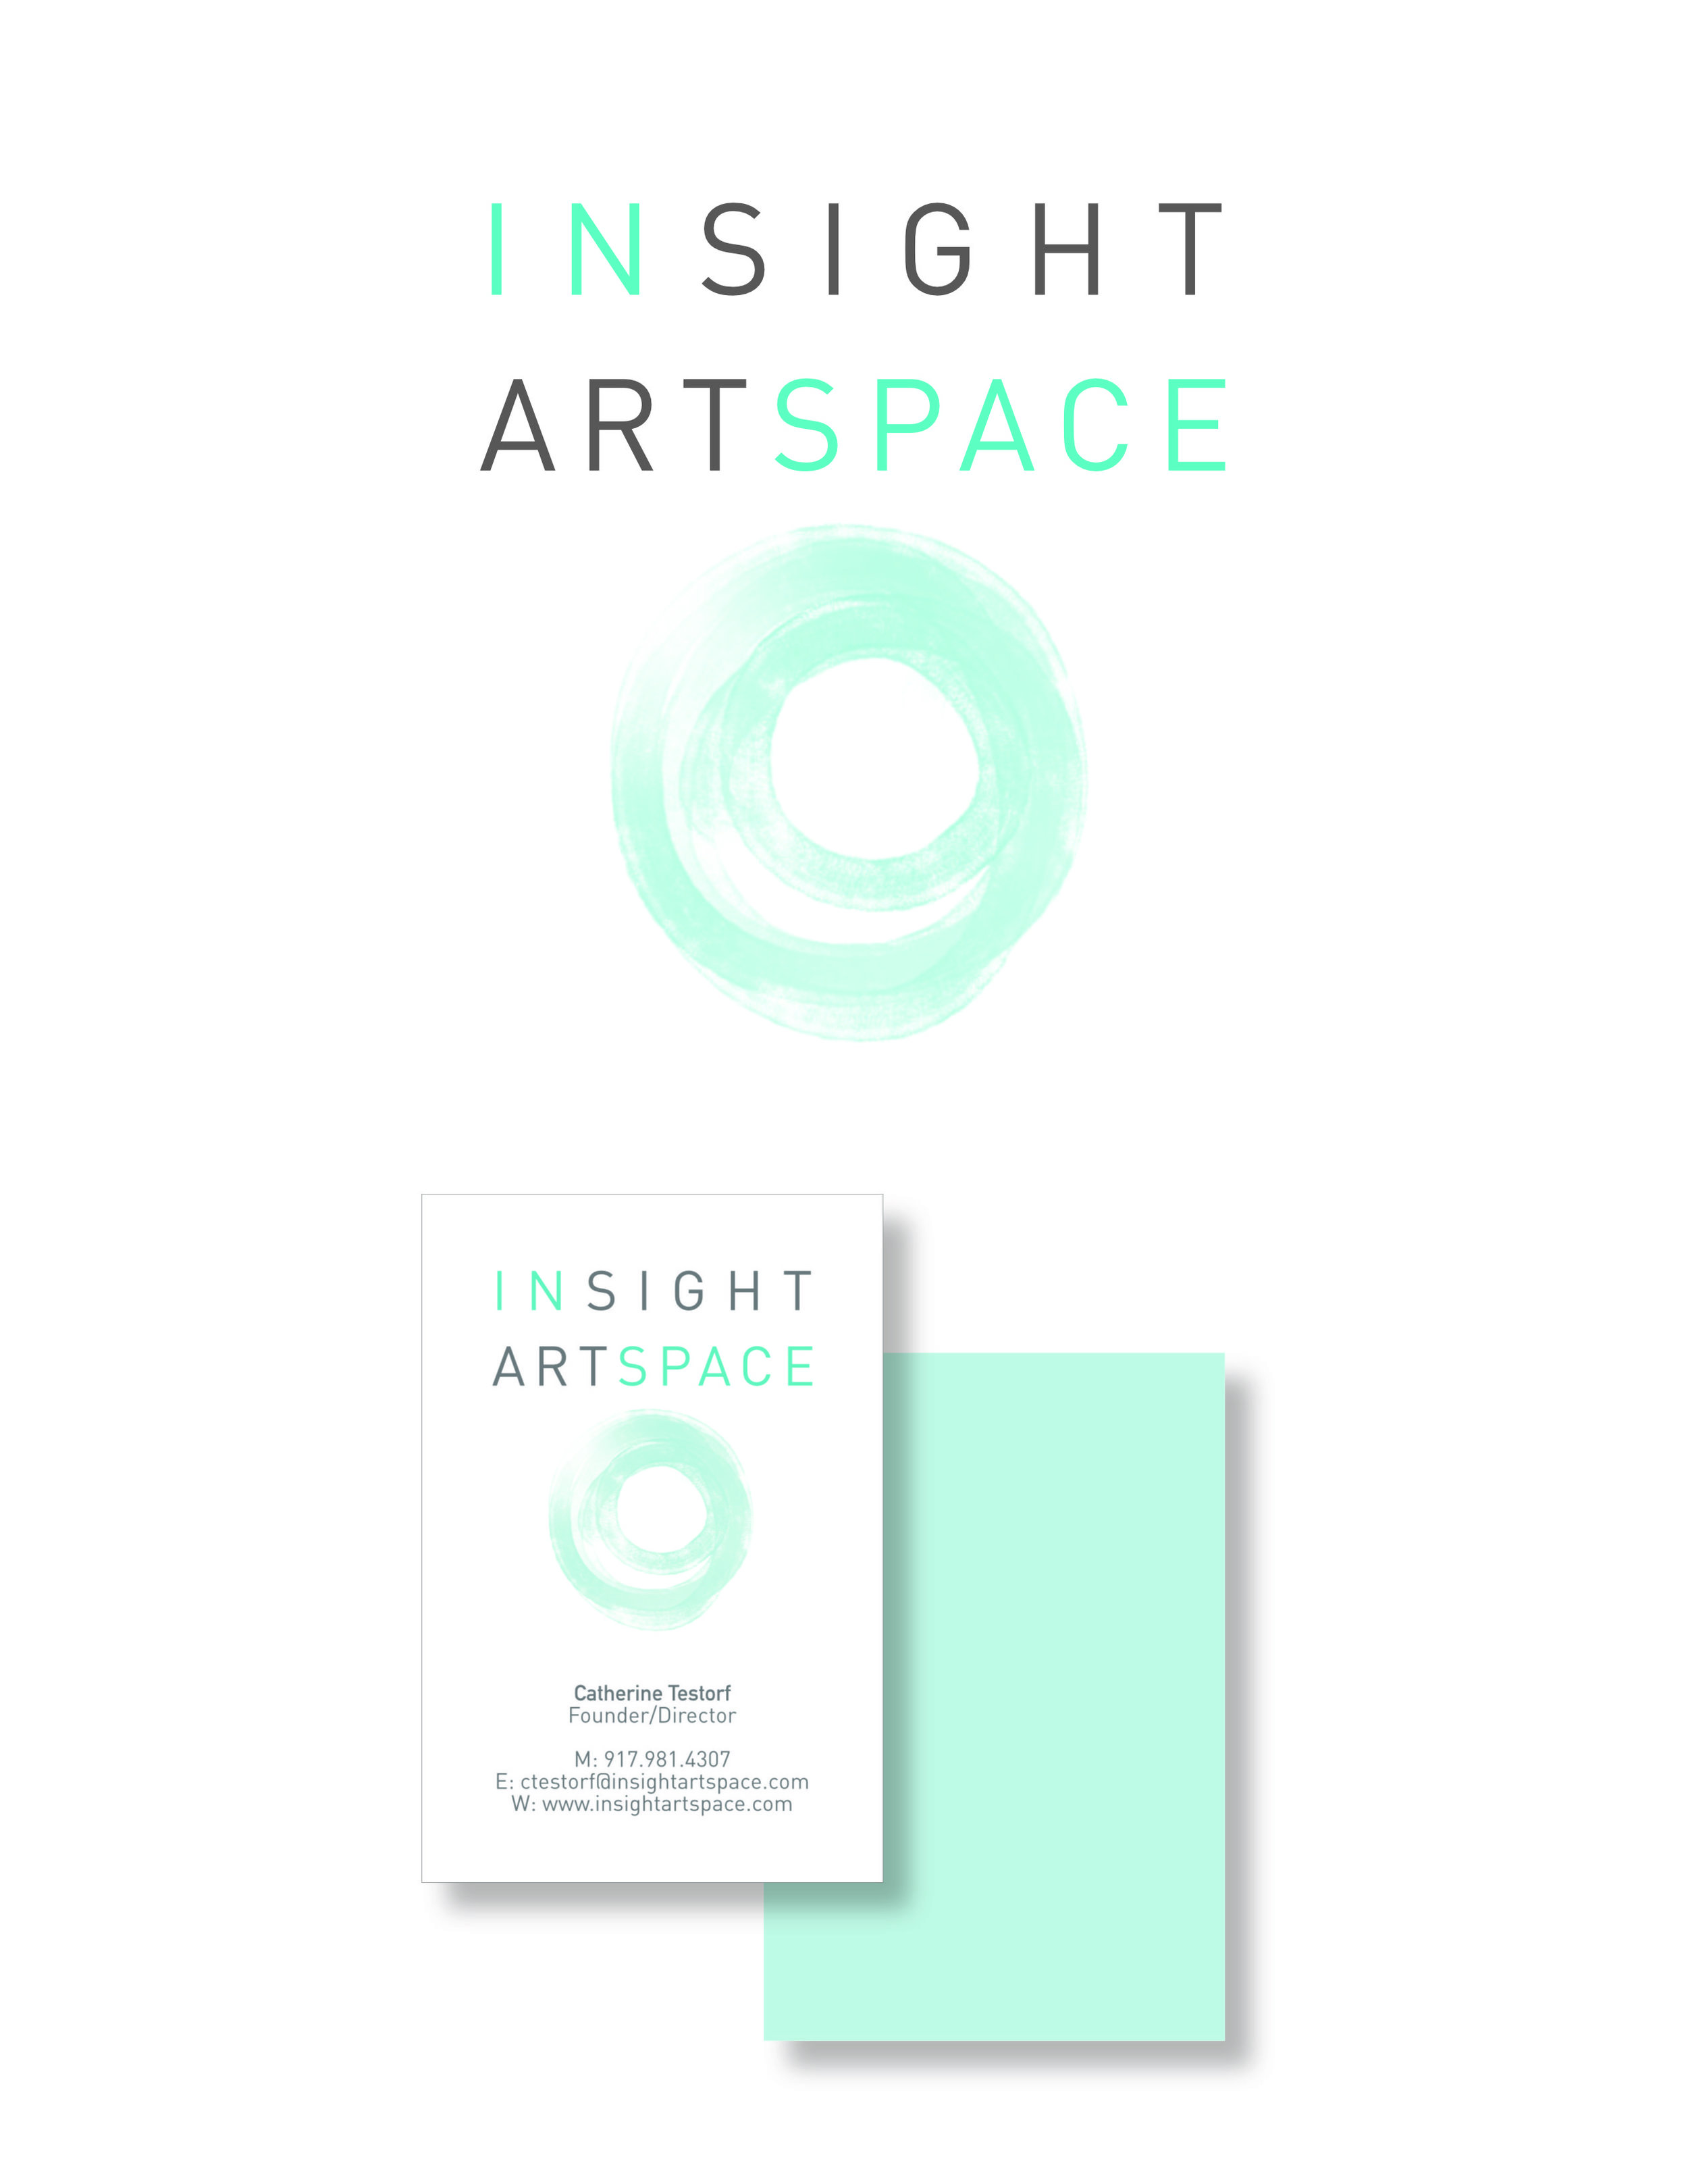 Insight Artspace Logo_4_Select and Bus. Card Comp.jpg